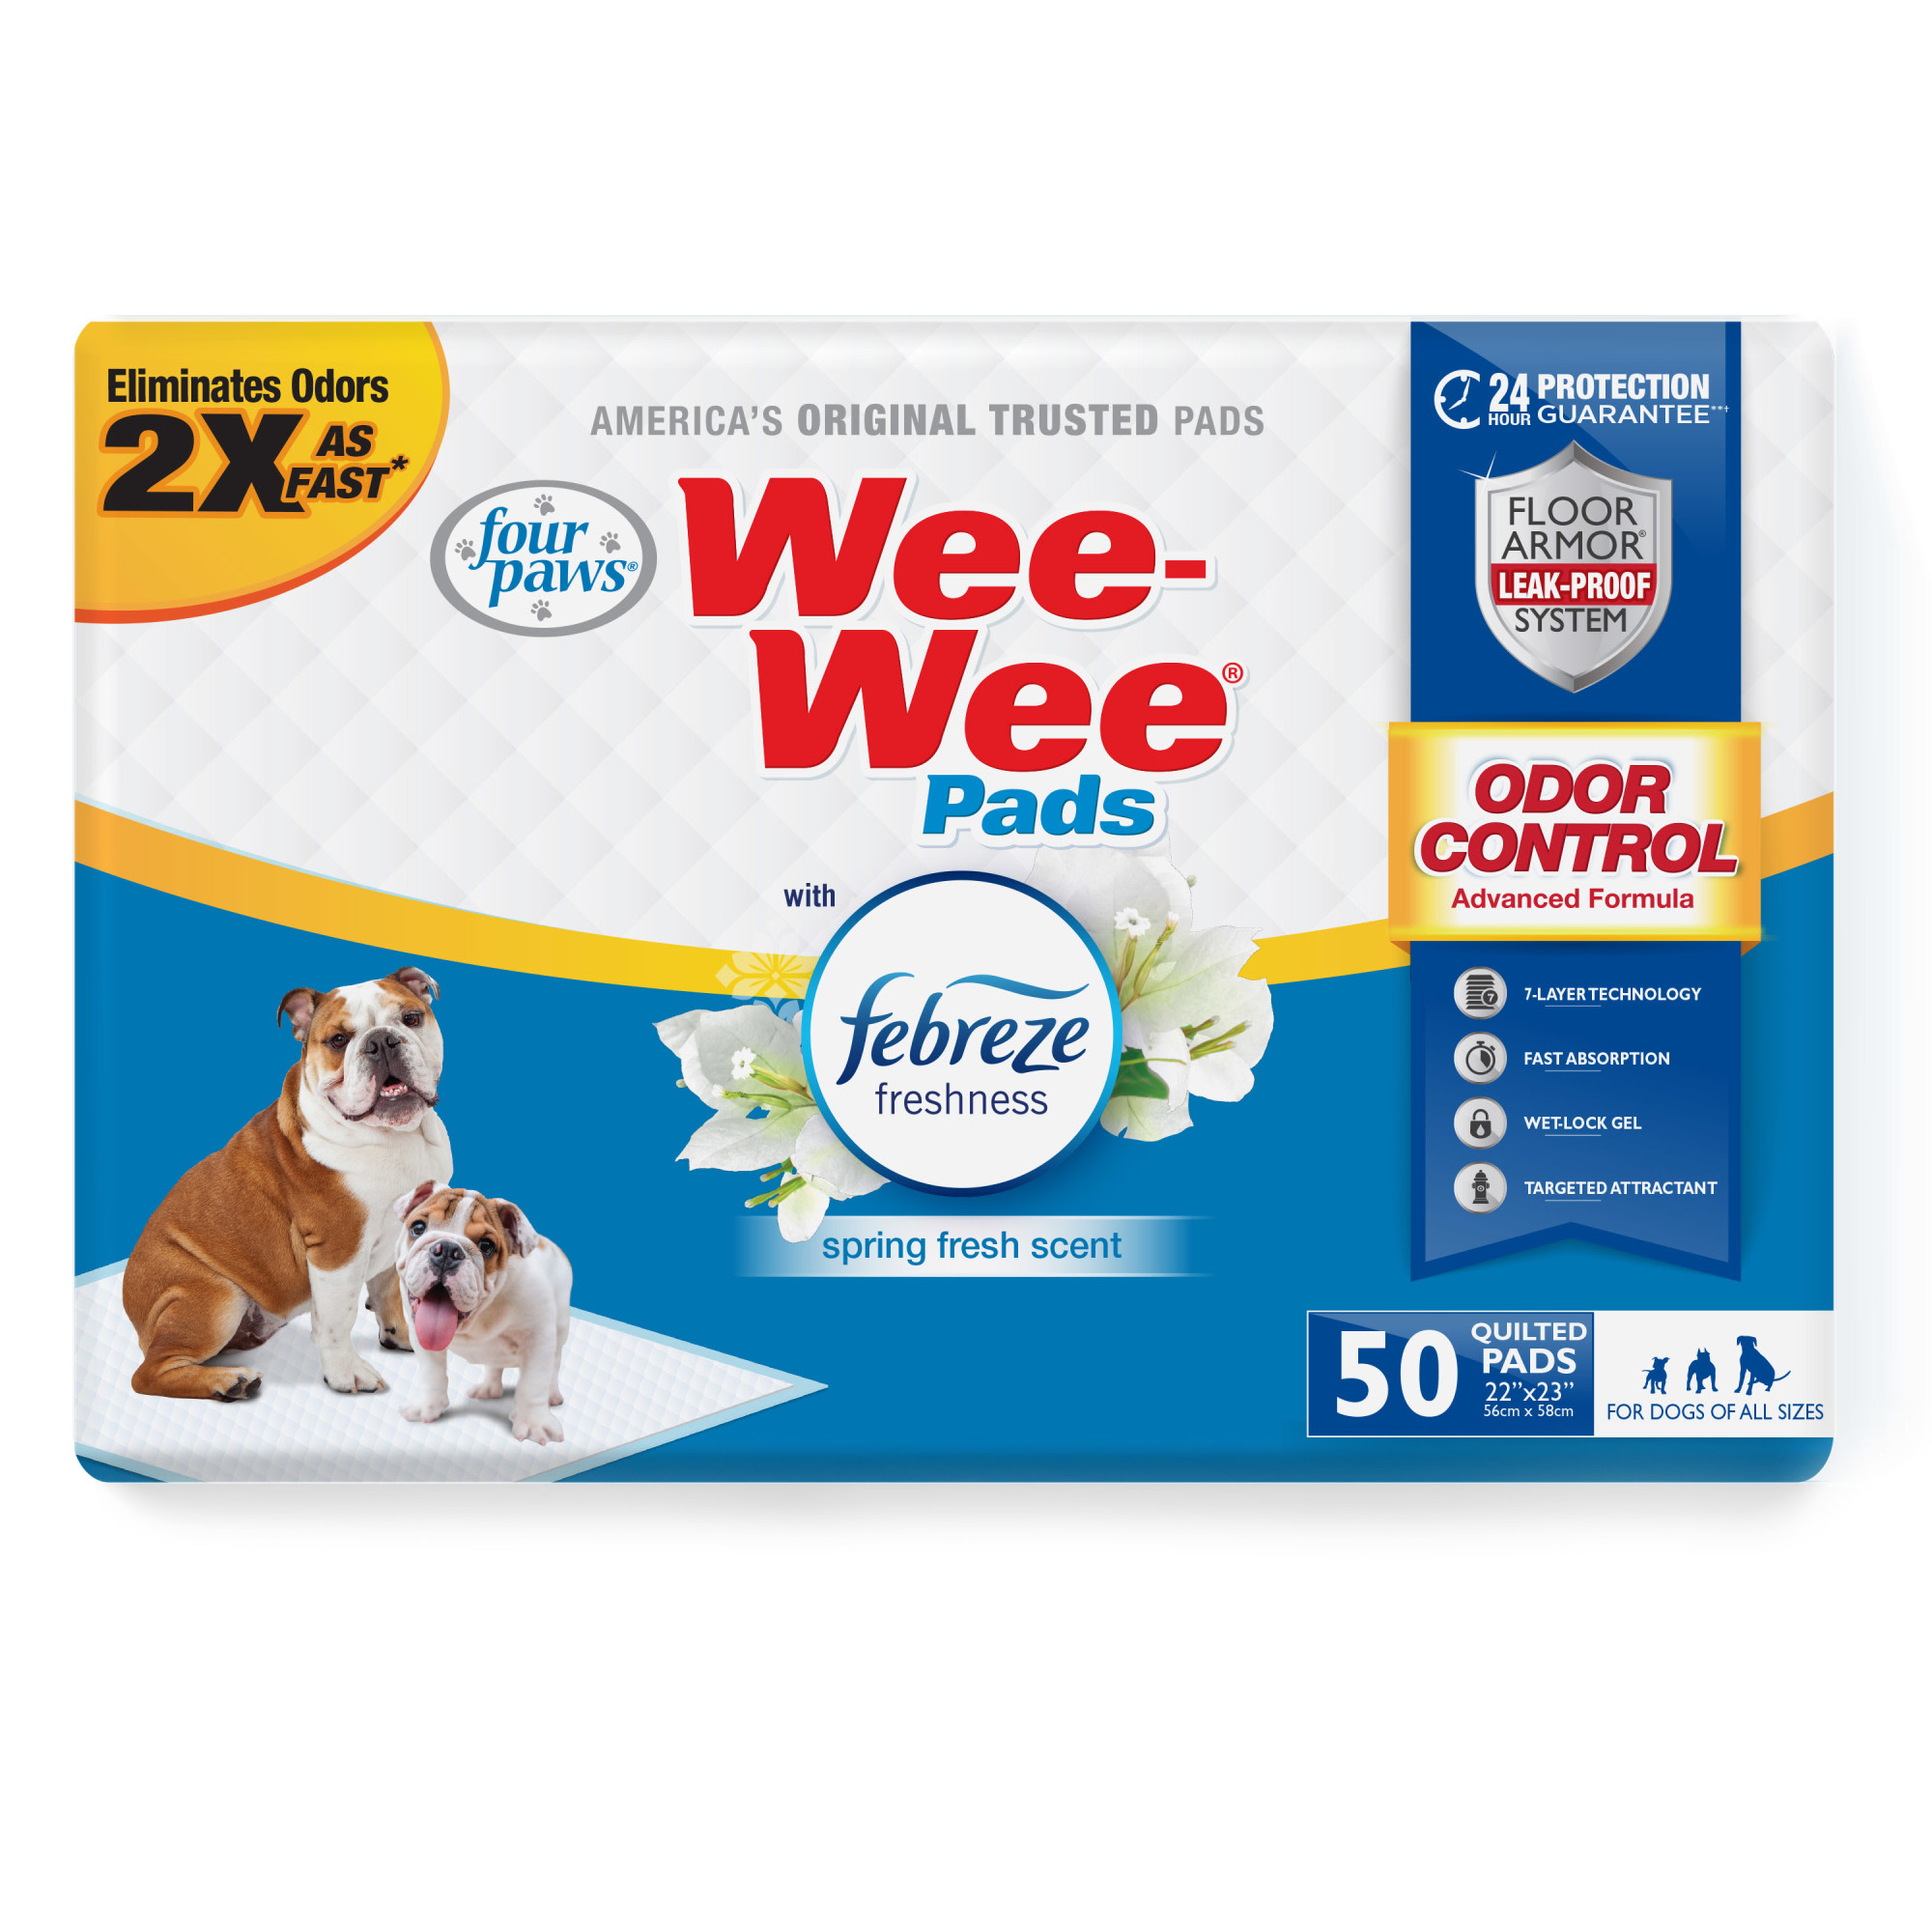 Four Paws Wee-Wee Odor Control with Febreze Freshness Pads for Dogs, Count of 50, 50 CT